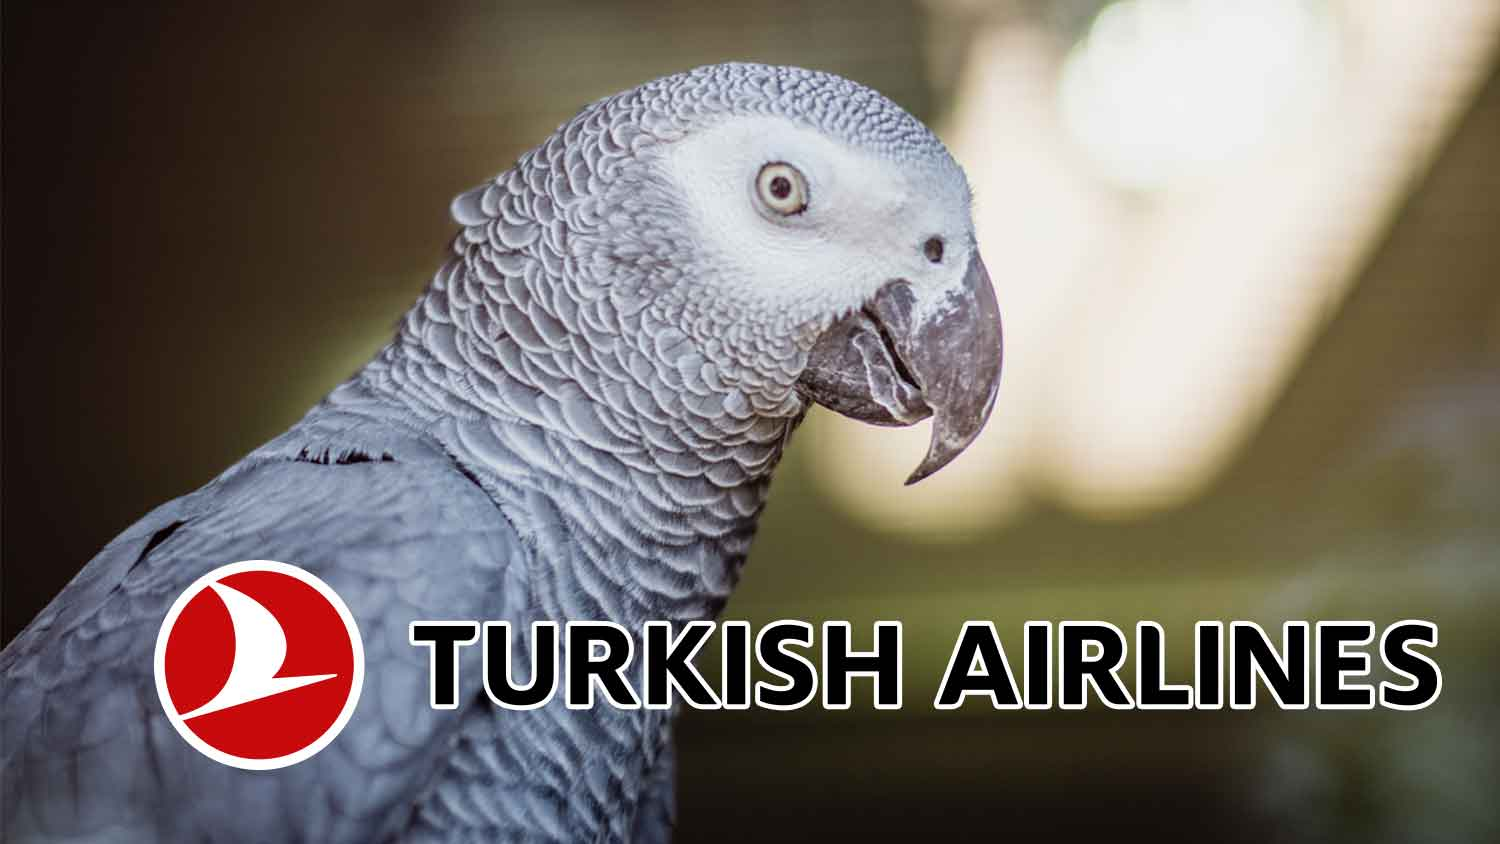 Turkish Airlines Is Now Fighting Illegal Animal Traffickers